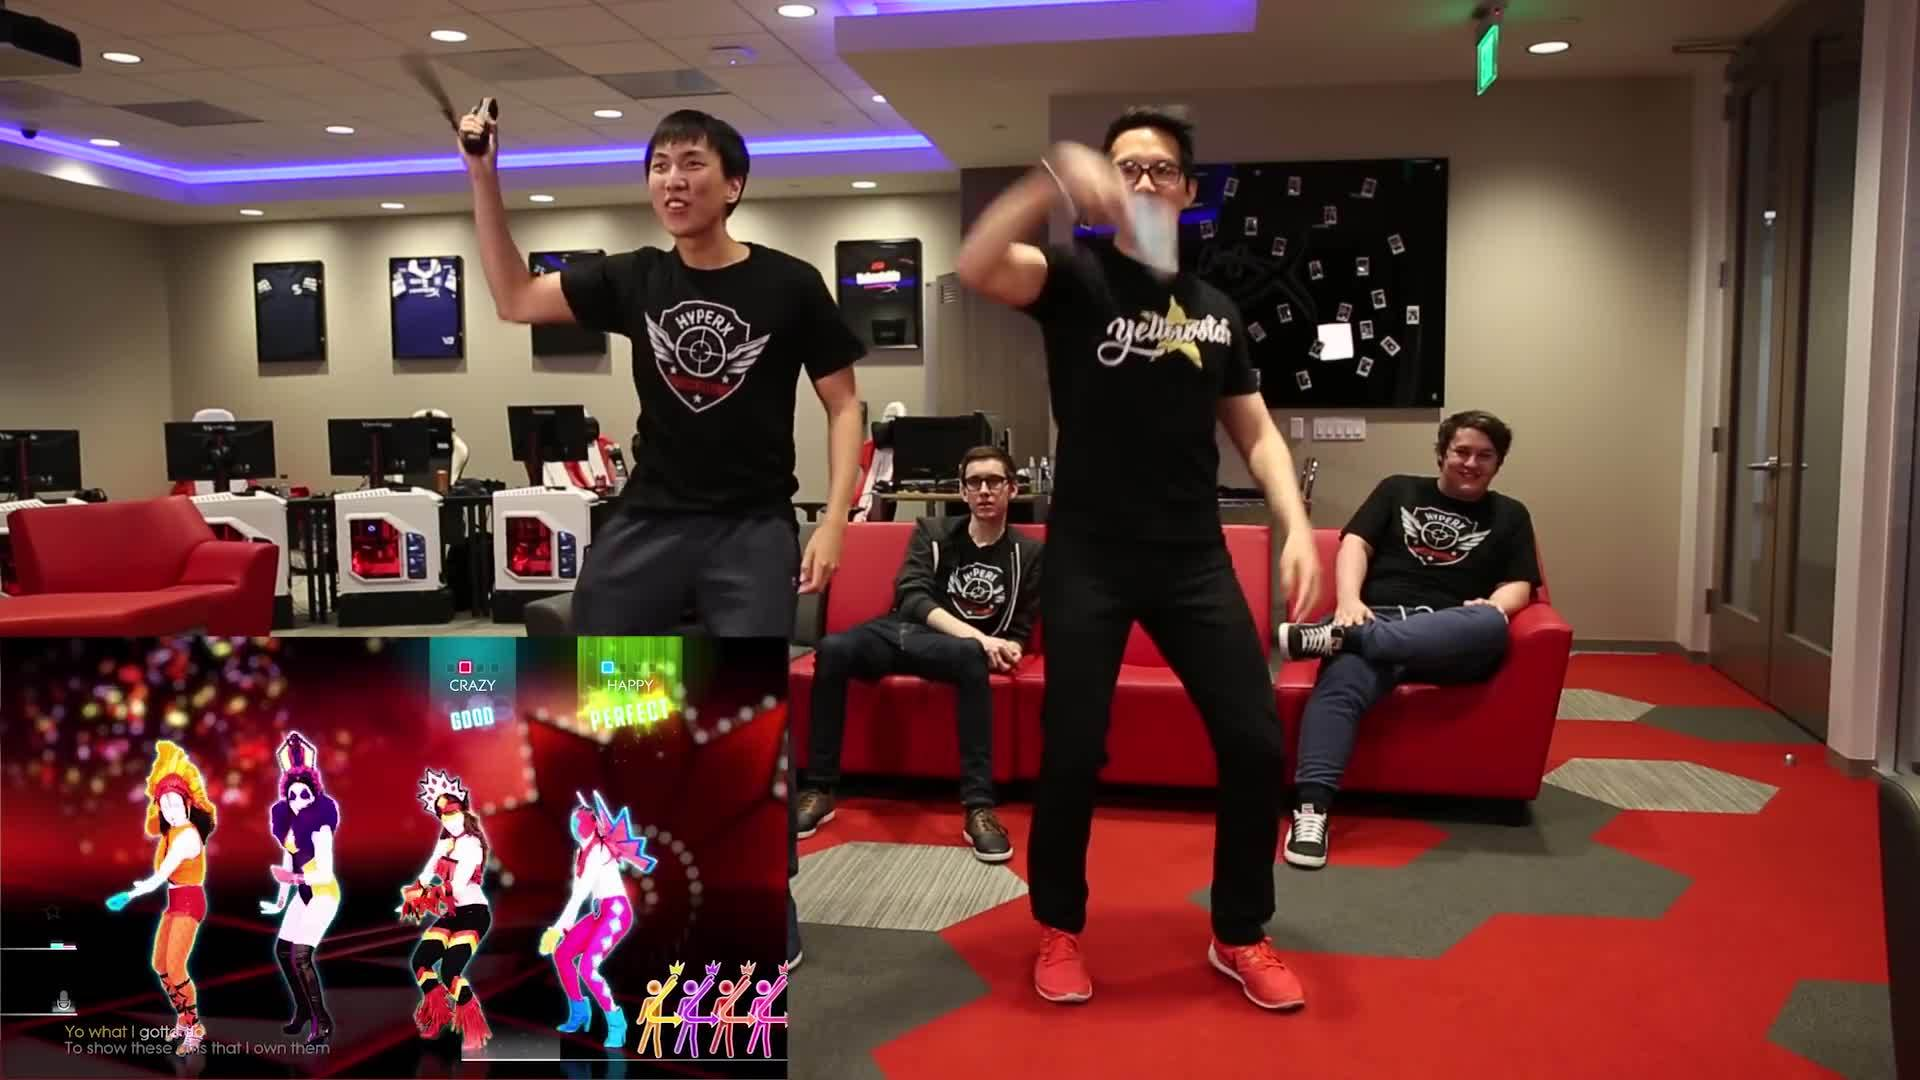 justdance, teamsolomid, tsm, TSM Just Dance | HyperX Moments GIFs